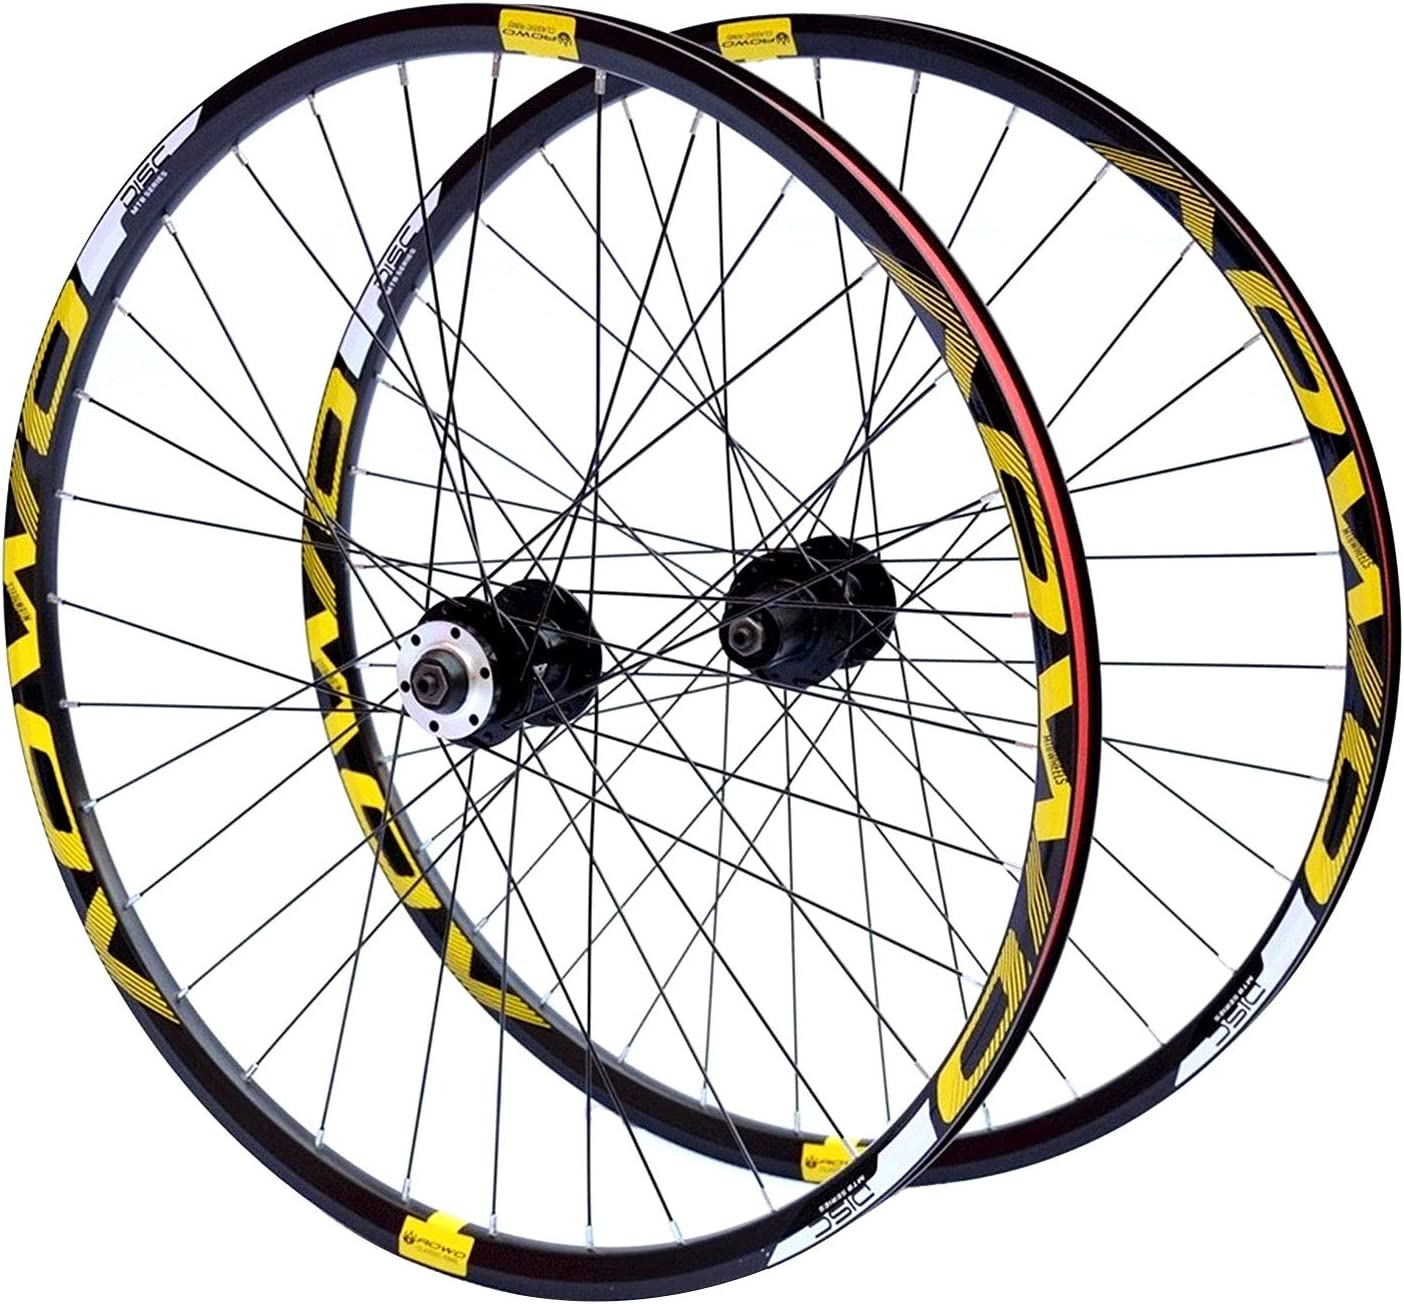 GXFWJD Bicycle Wheelset MTB Bike Wheels Inch In a popularity Super sale 26 Cycling 29 27.5